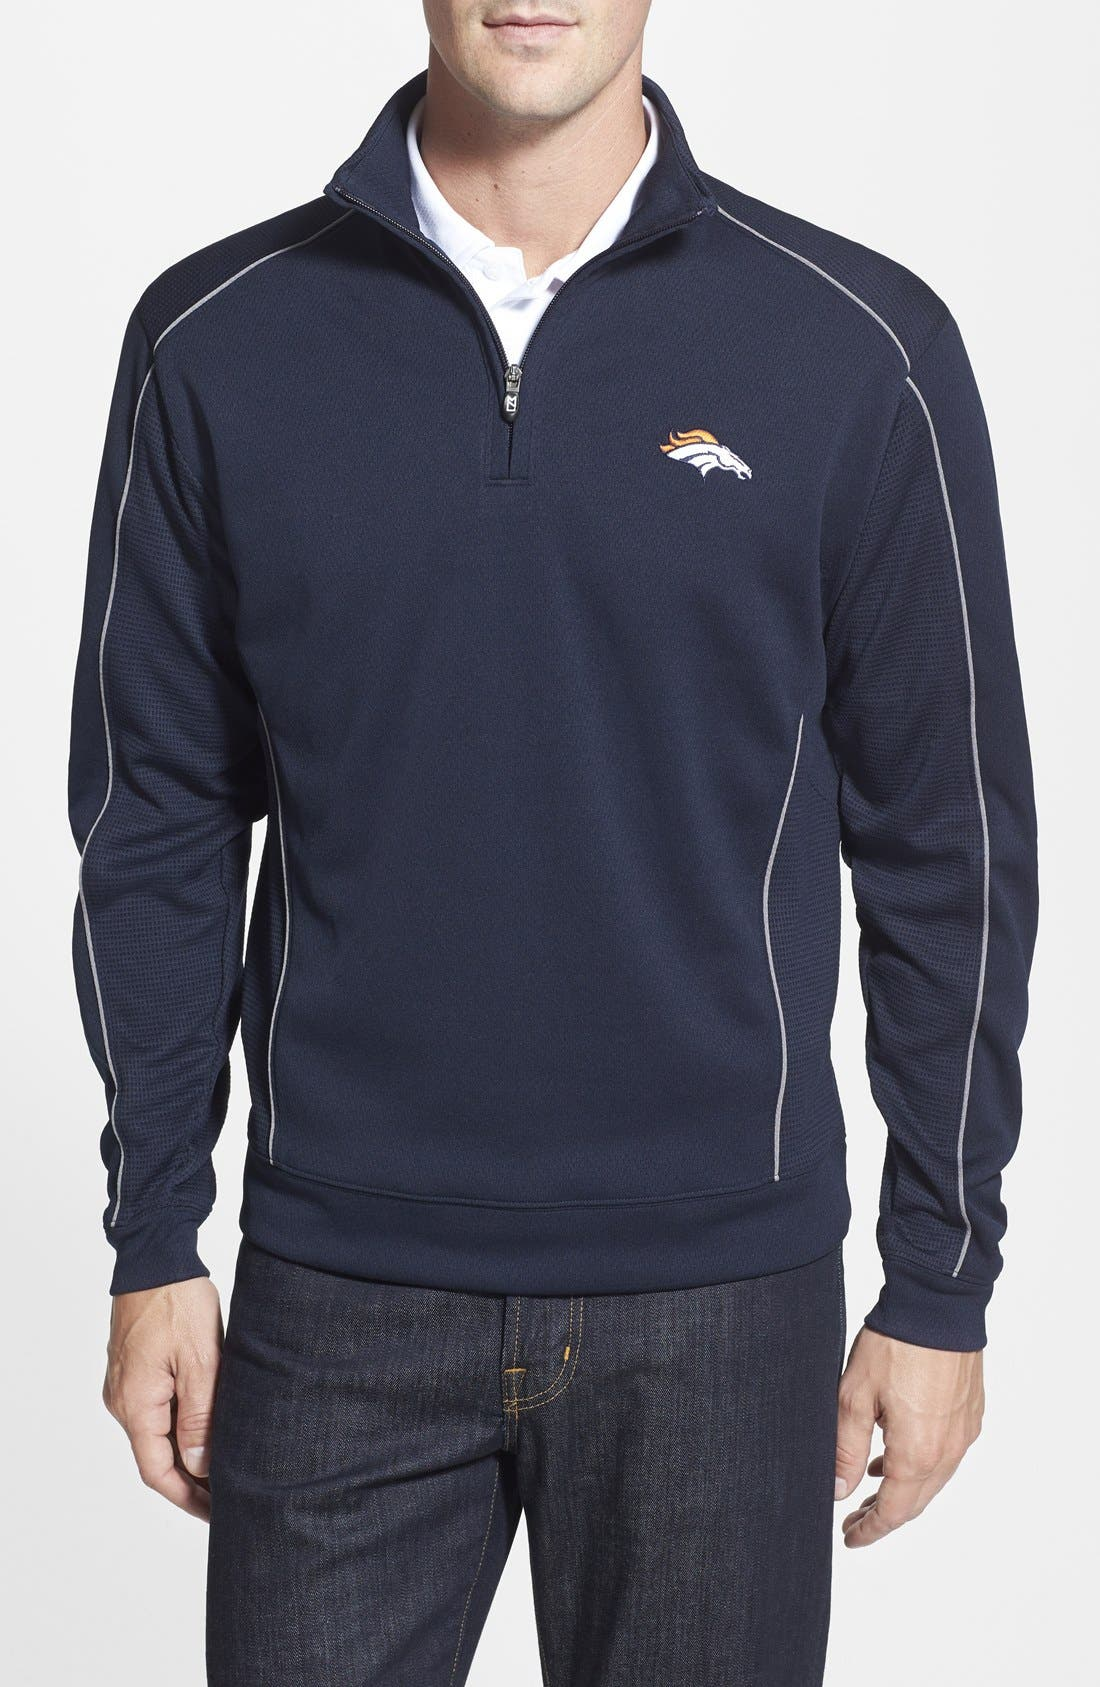 'Denver Broncos - Edge' DryTec Moisture Wicking Half Zip Pullover,                             Main thumbnail 1, color,                             420